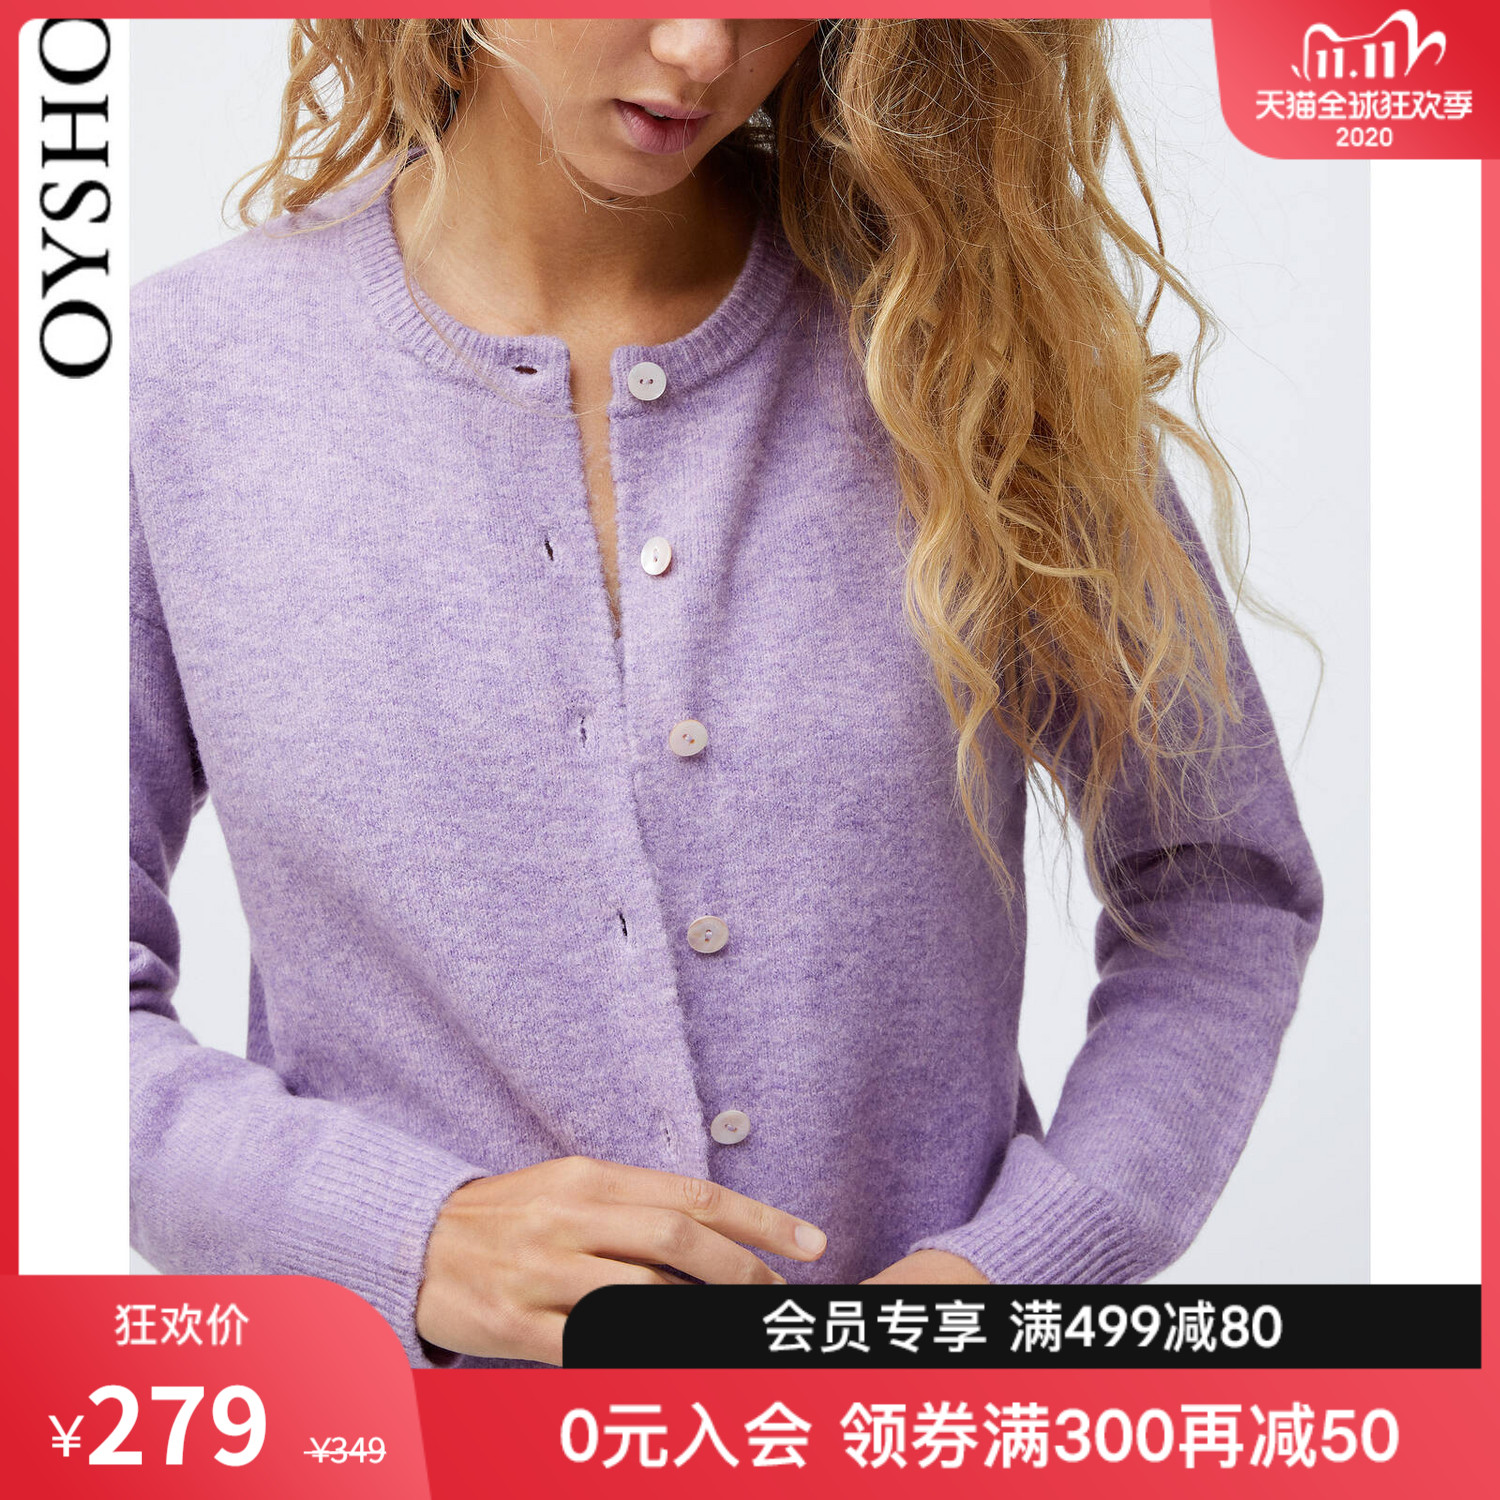 Oysho purple knit button釦 jacket 2020 new salty sweet sweater cardigan 30373523219